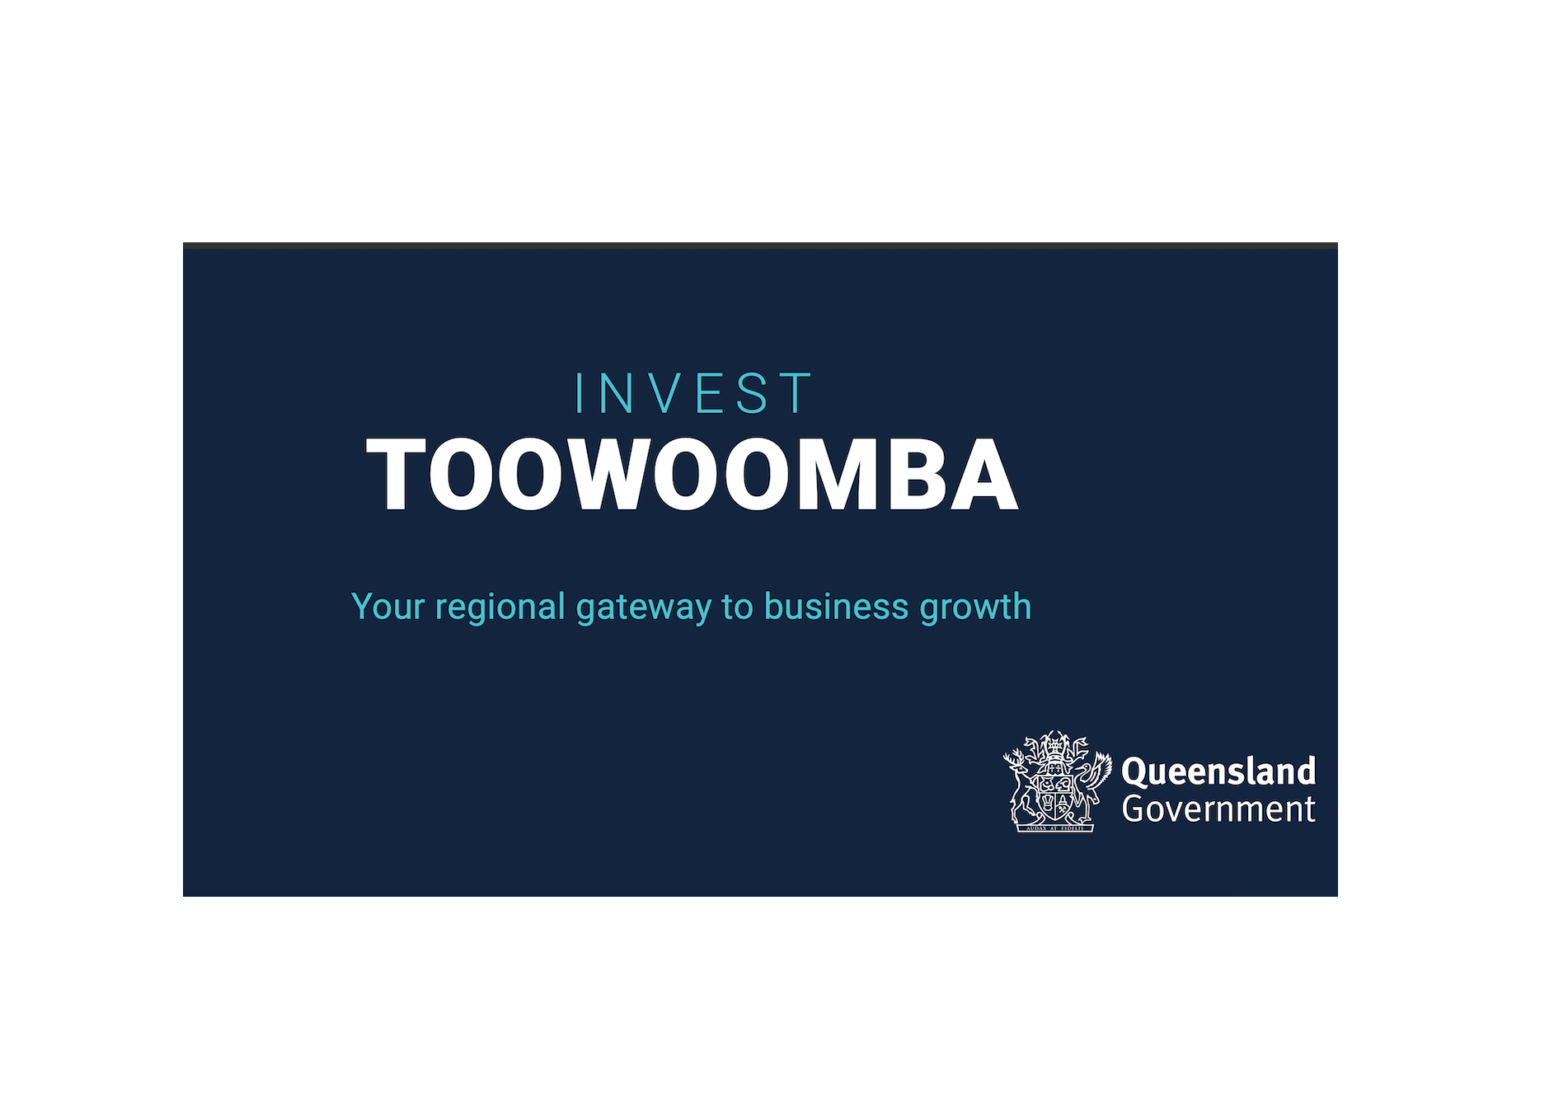 Queensland Government release 'Invest Toowoomba' prospectus